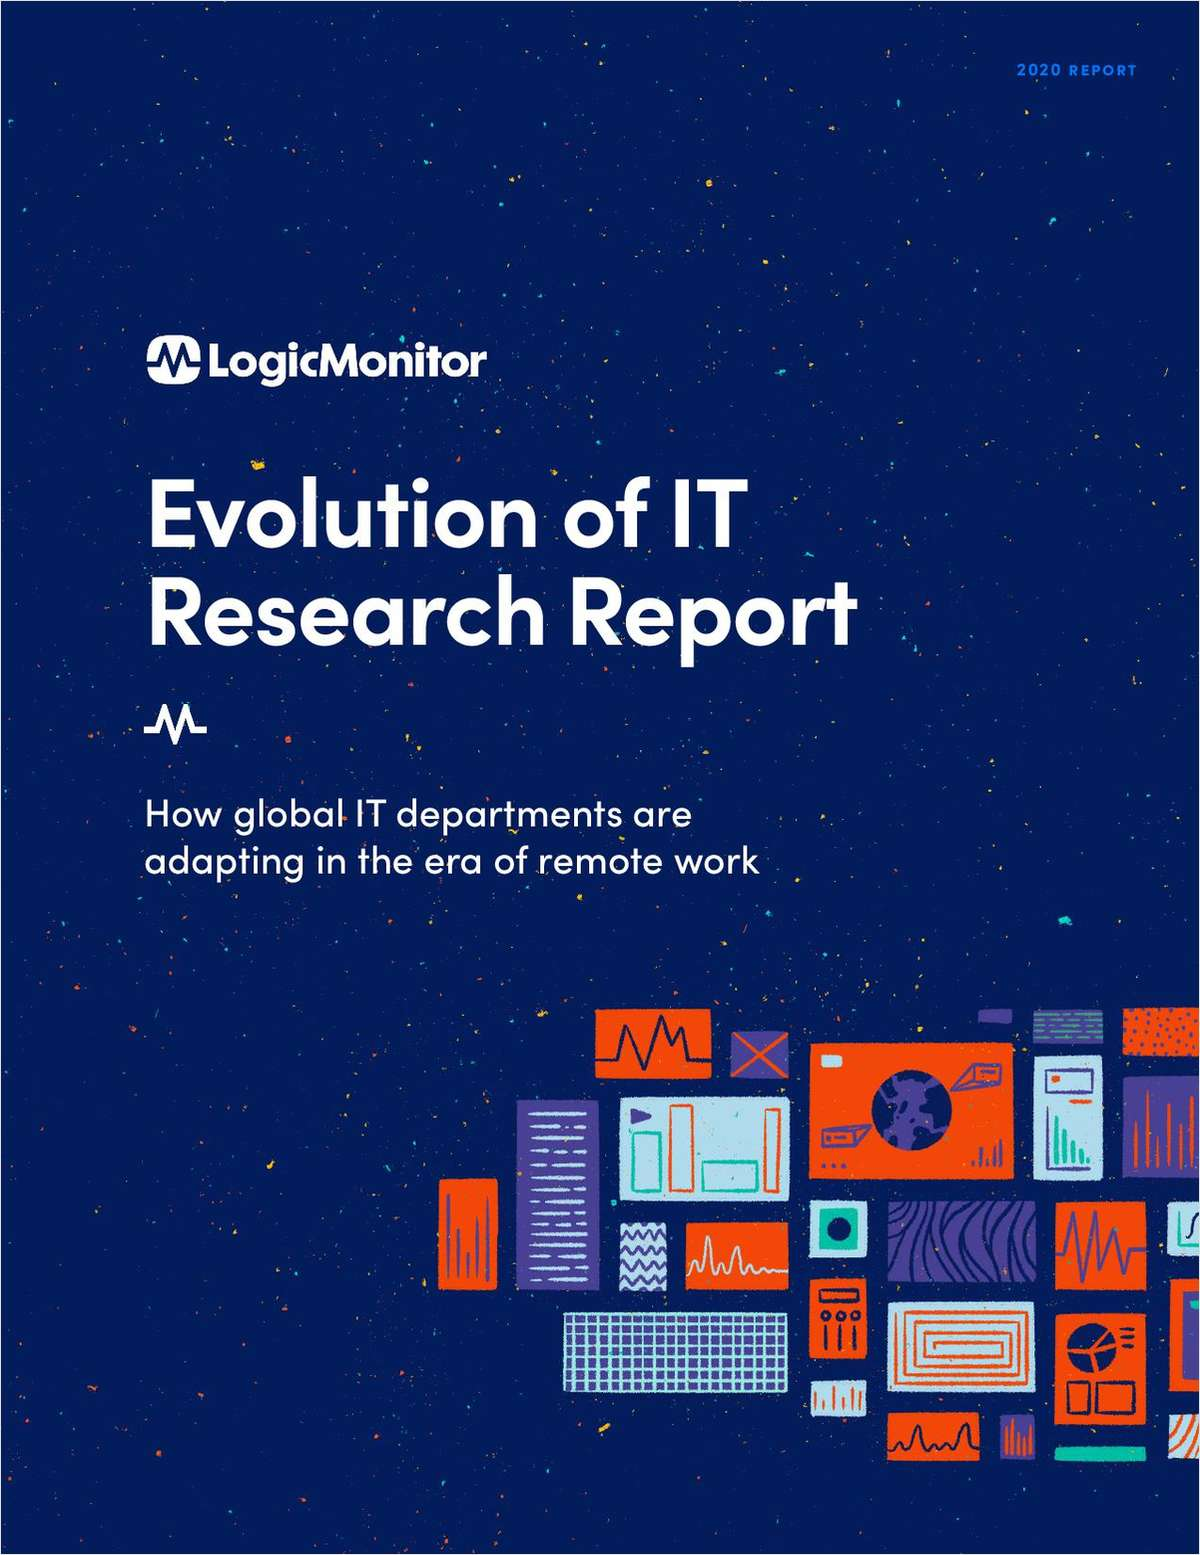 Evolution of IT Research Report